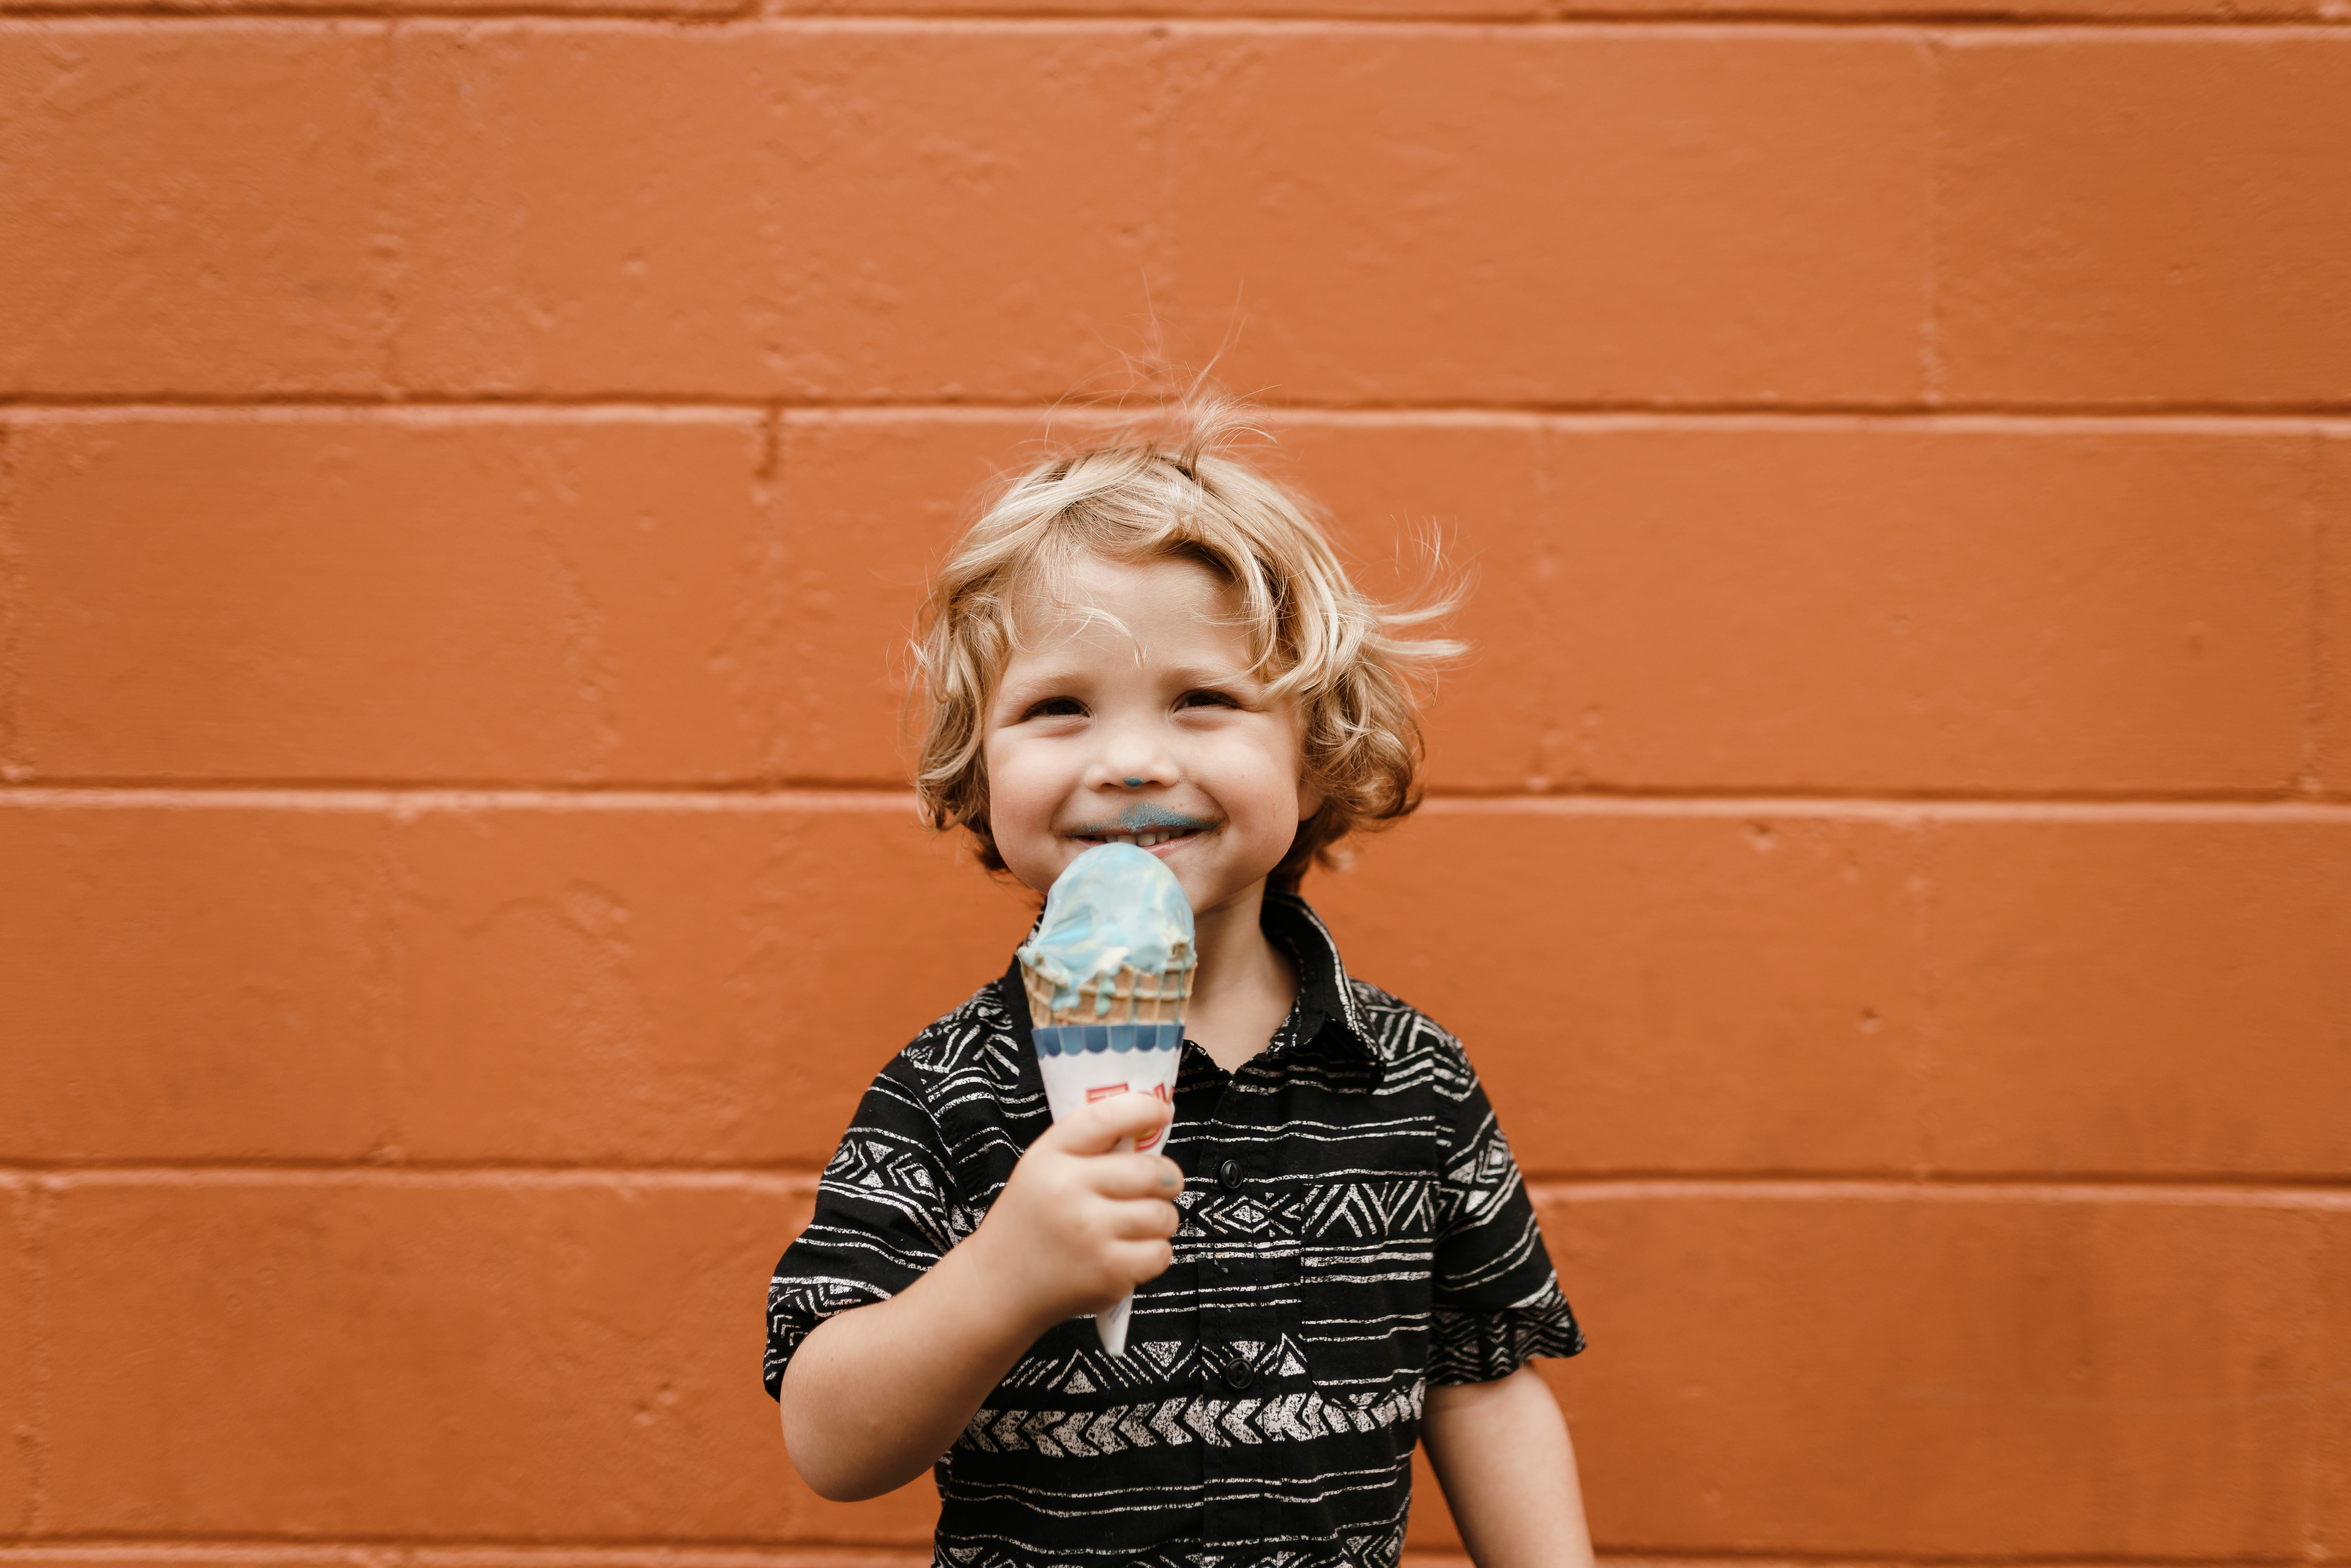 A little boy wearing a printed black and white shirt with ice cream all over his face and an ice cream cone in his hand in Bentonville